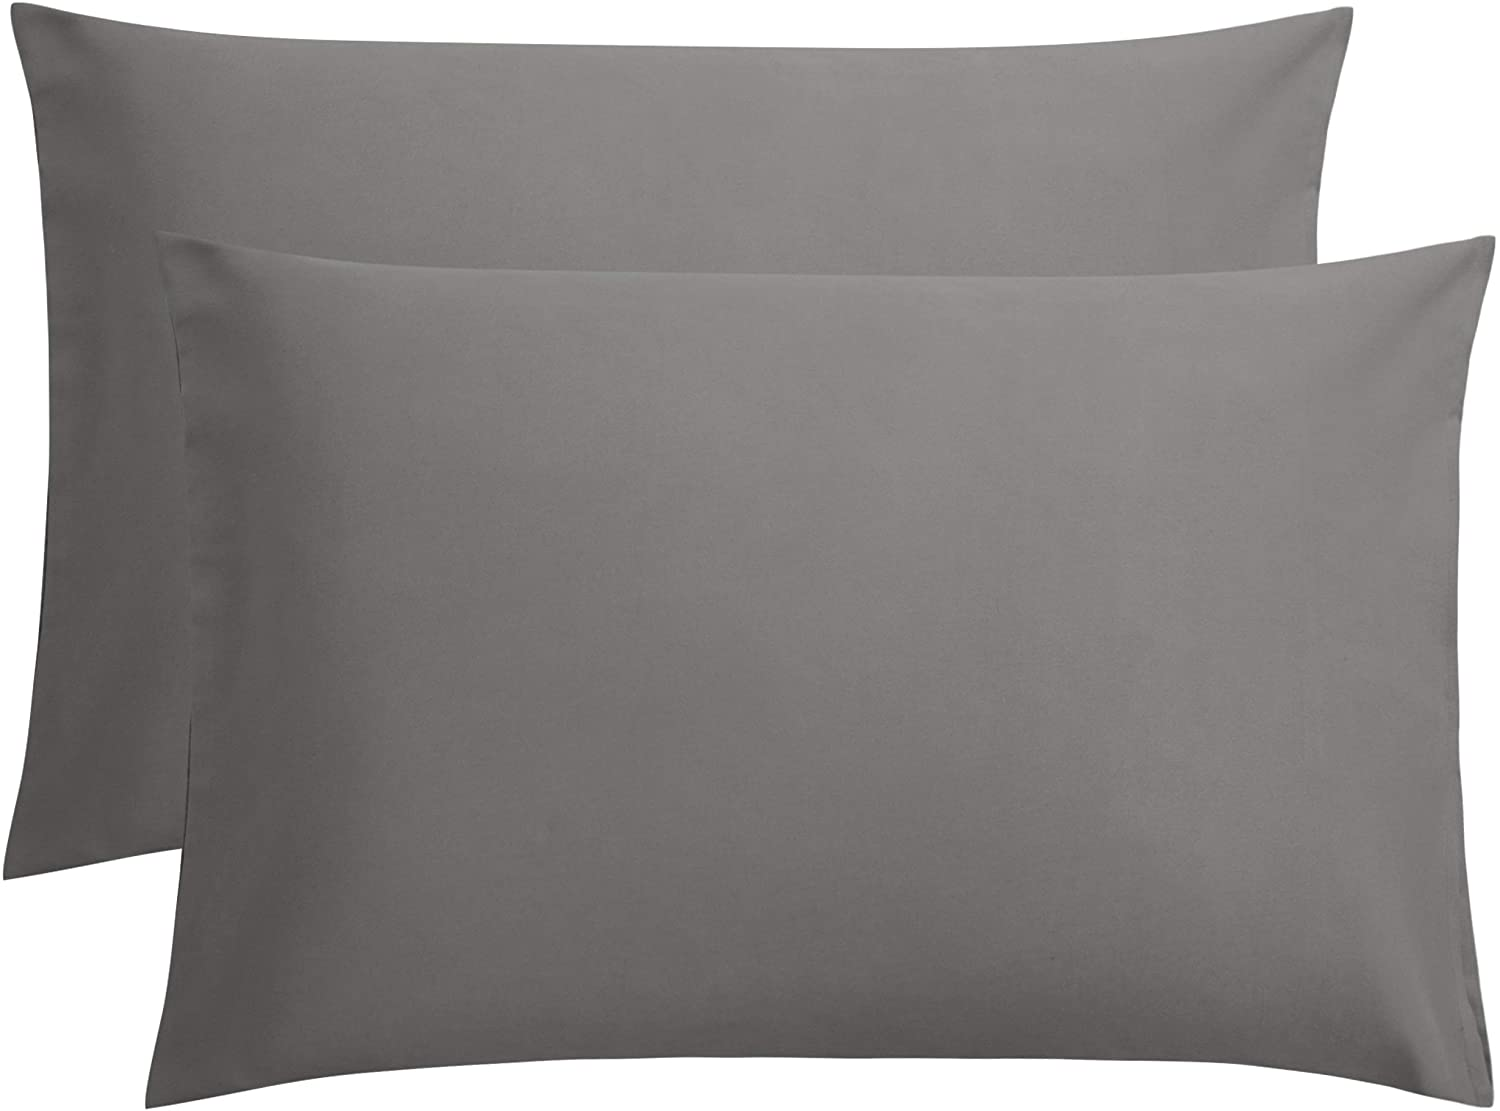 "FLXXIE Microfiber Queen Pillowcases, 2 Pack Ultra Soft Premium Quality, 20"" x 30"", Dark Grey"